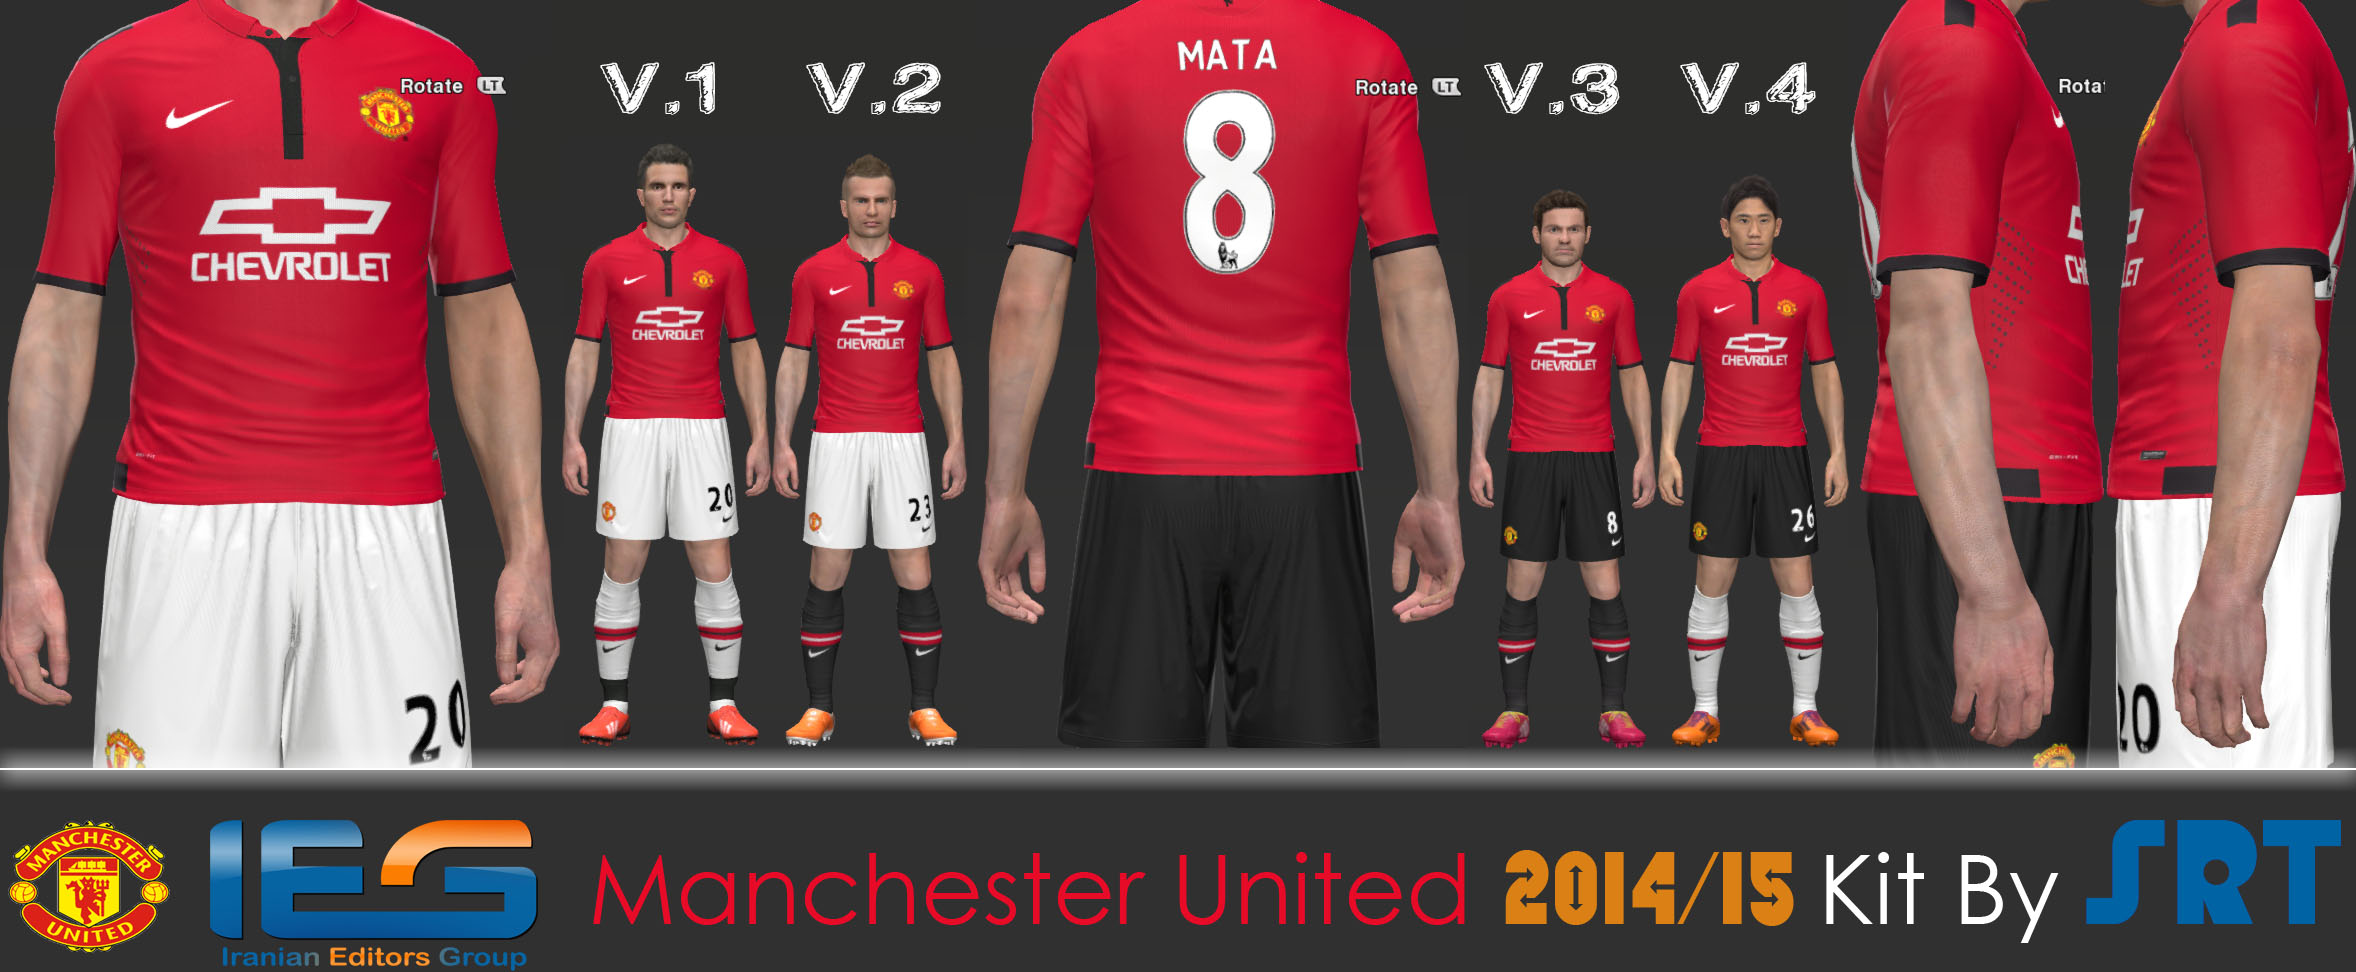 PES 2014 Manchester United 2014-2015 Kits PreviewManchester United 2014 Away Kit